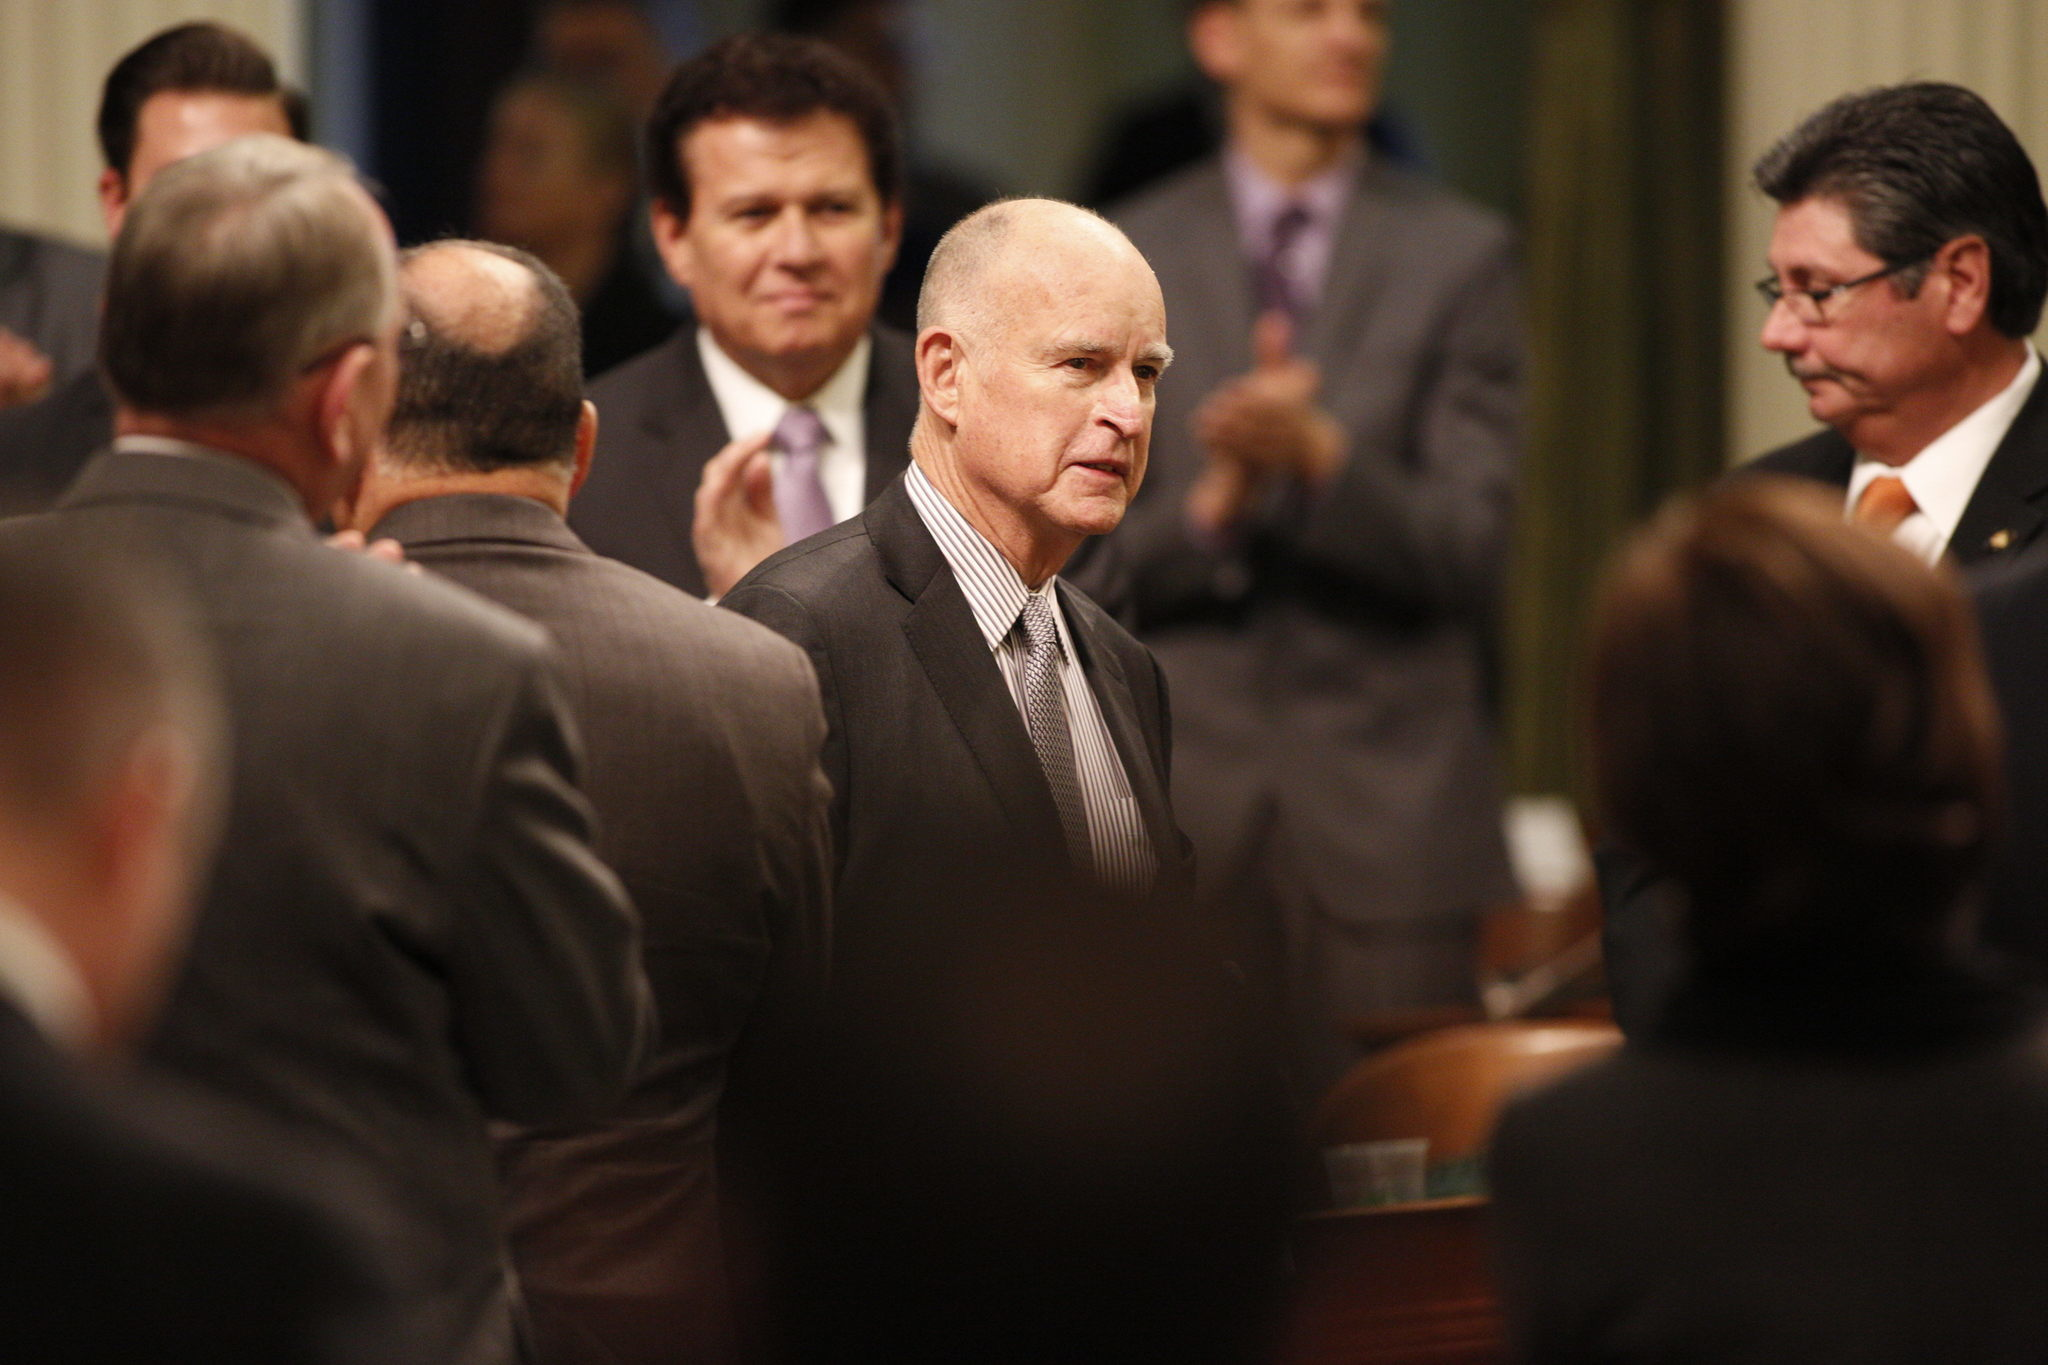 Gov. Brown Seeks Smaller Education, Child Care Cuts in State Budget